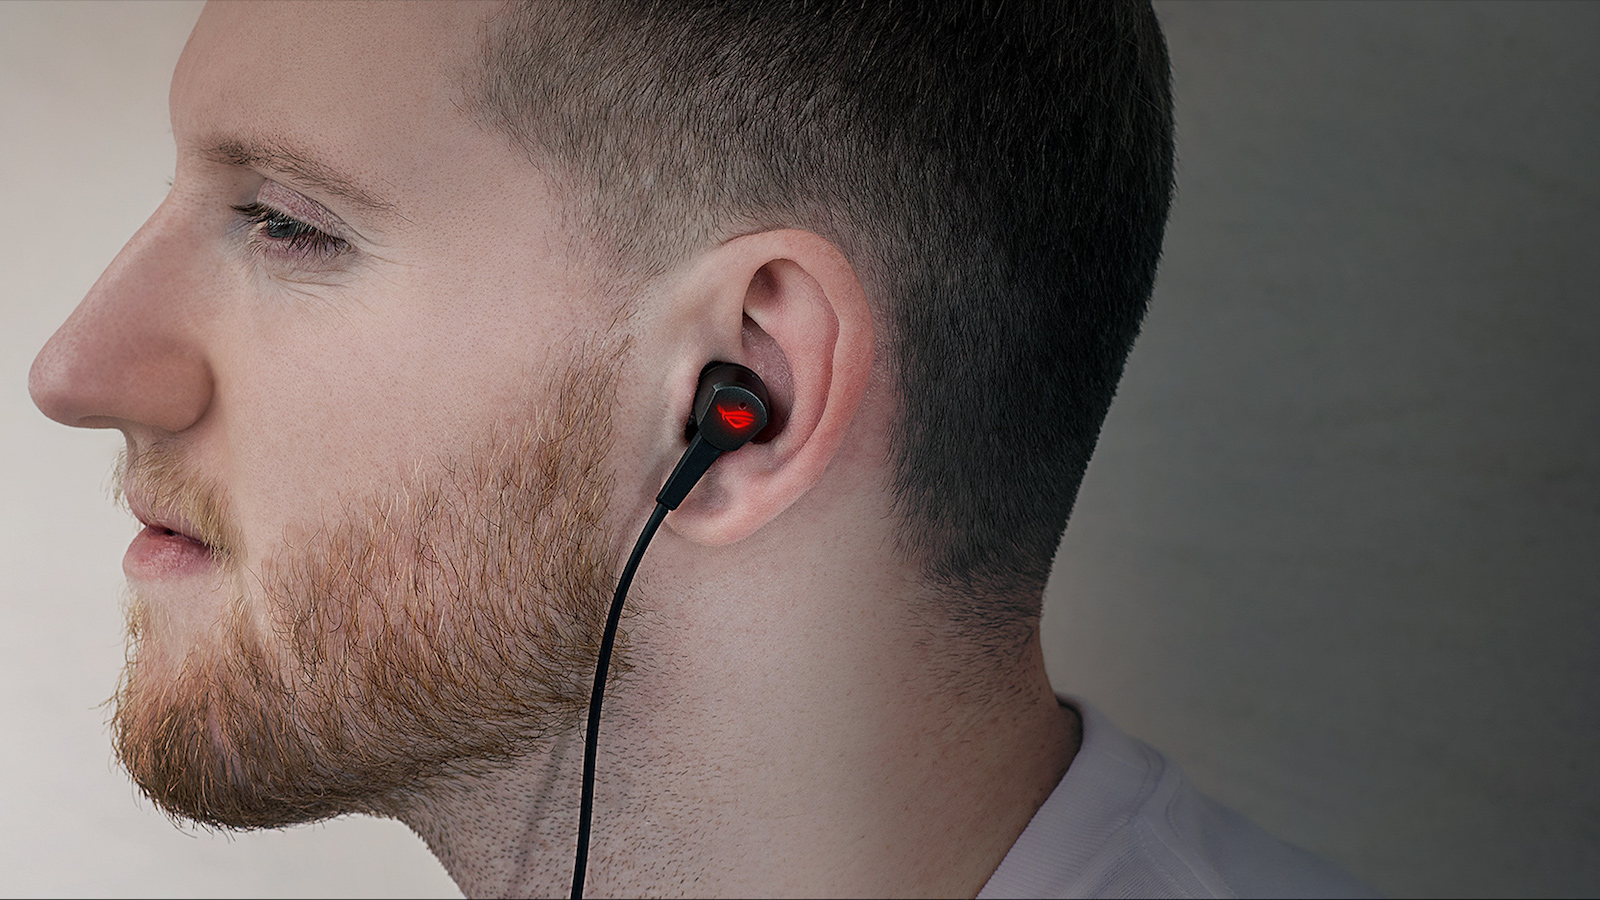 ASUS ROG Cetra in-ear headphones feature ANC technology and an Ambient mode